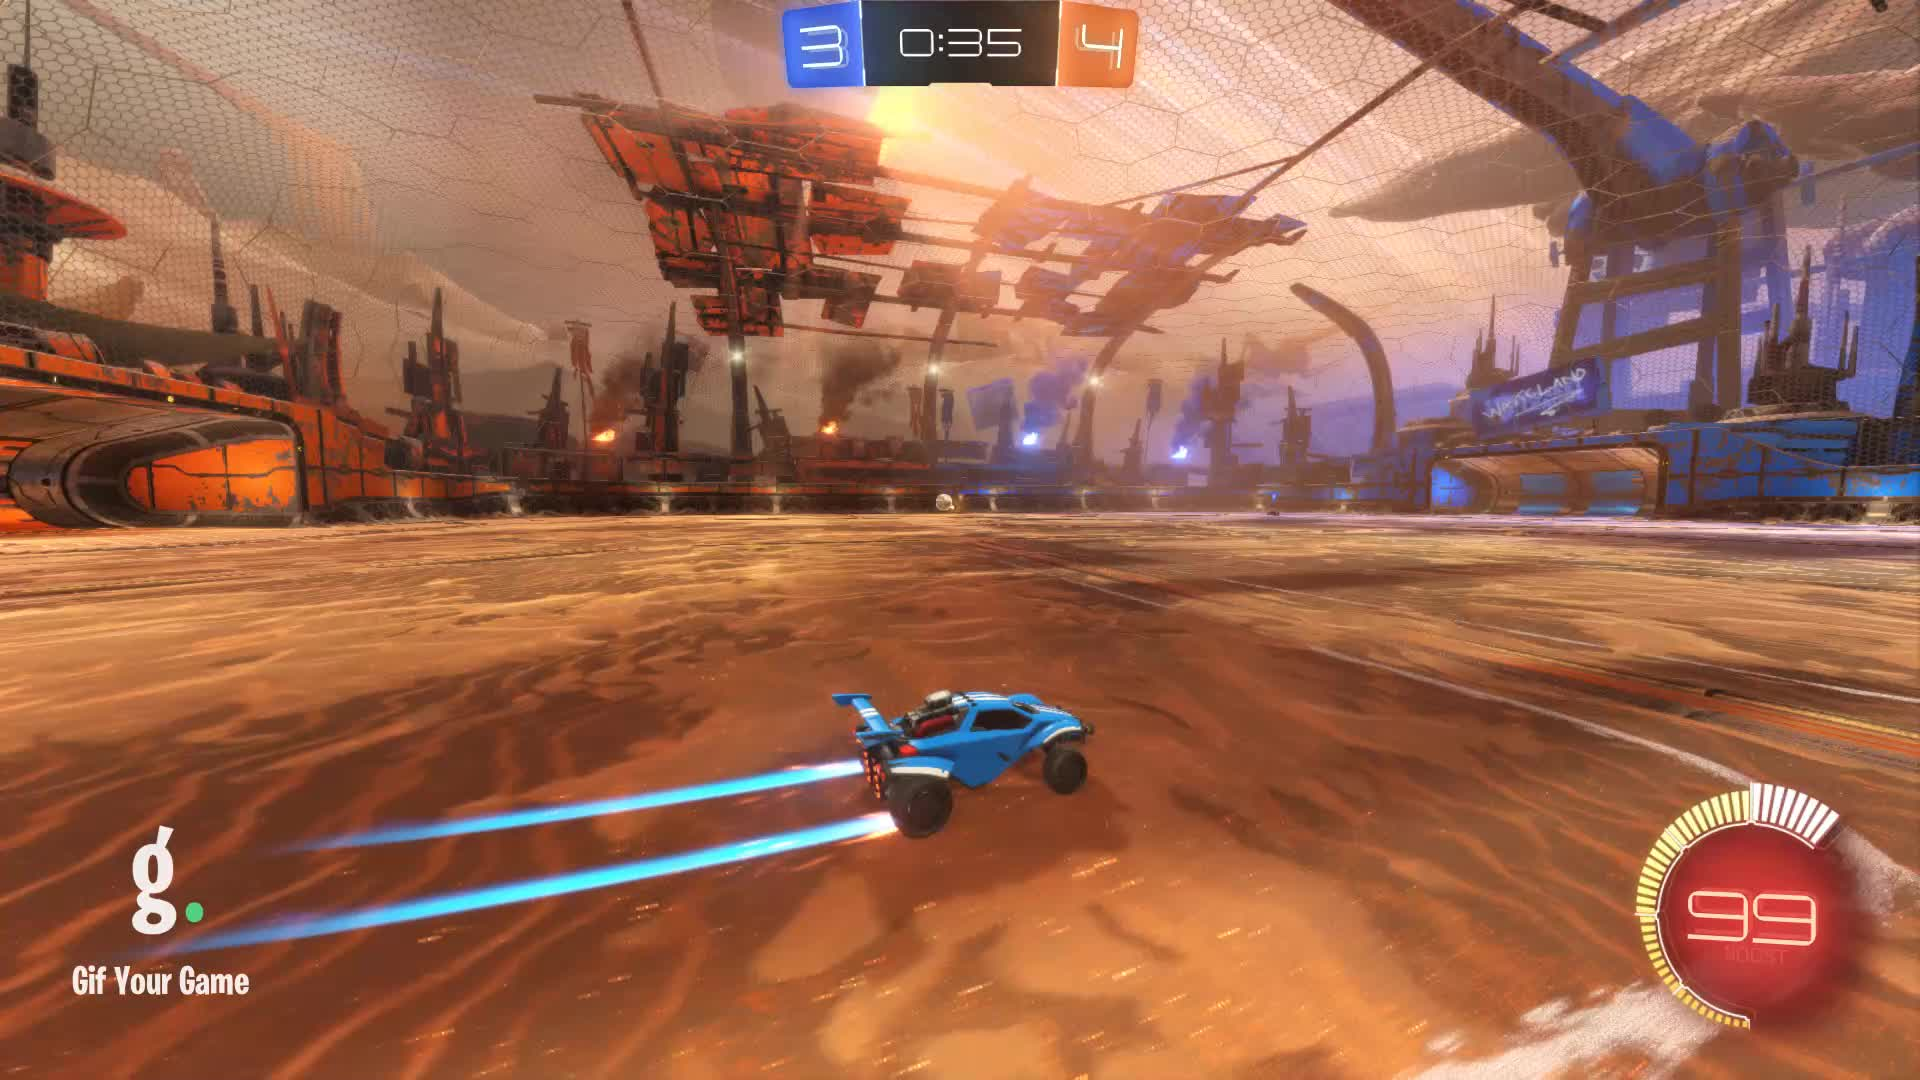 Assist, Gif Your Game, GifYourGame, Rocket League, RocketLeague, berserk., Assist 3: berserk. GIFs